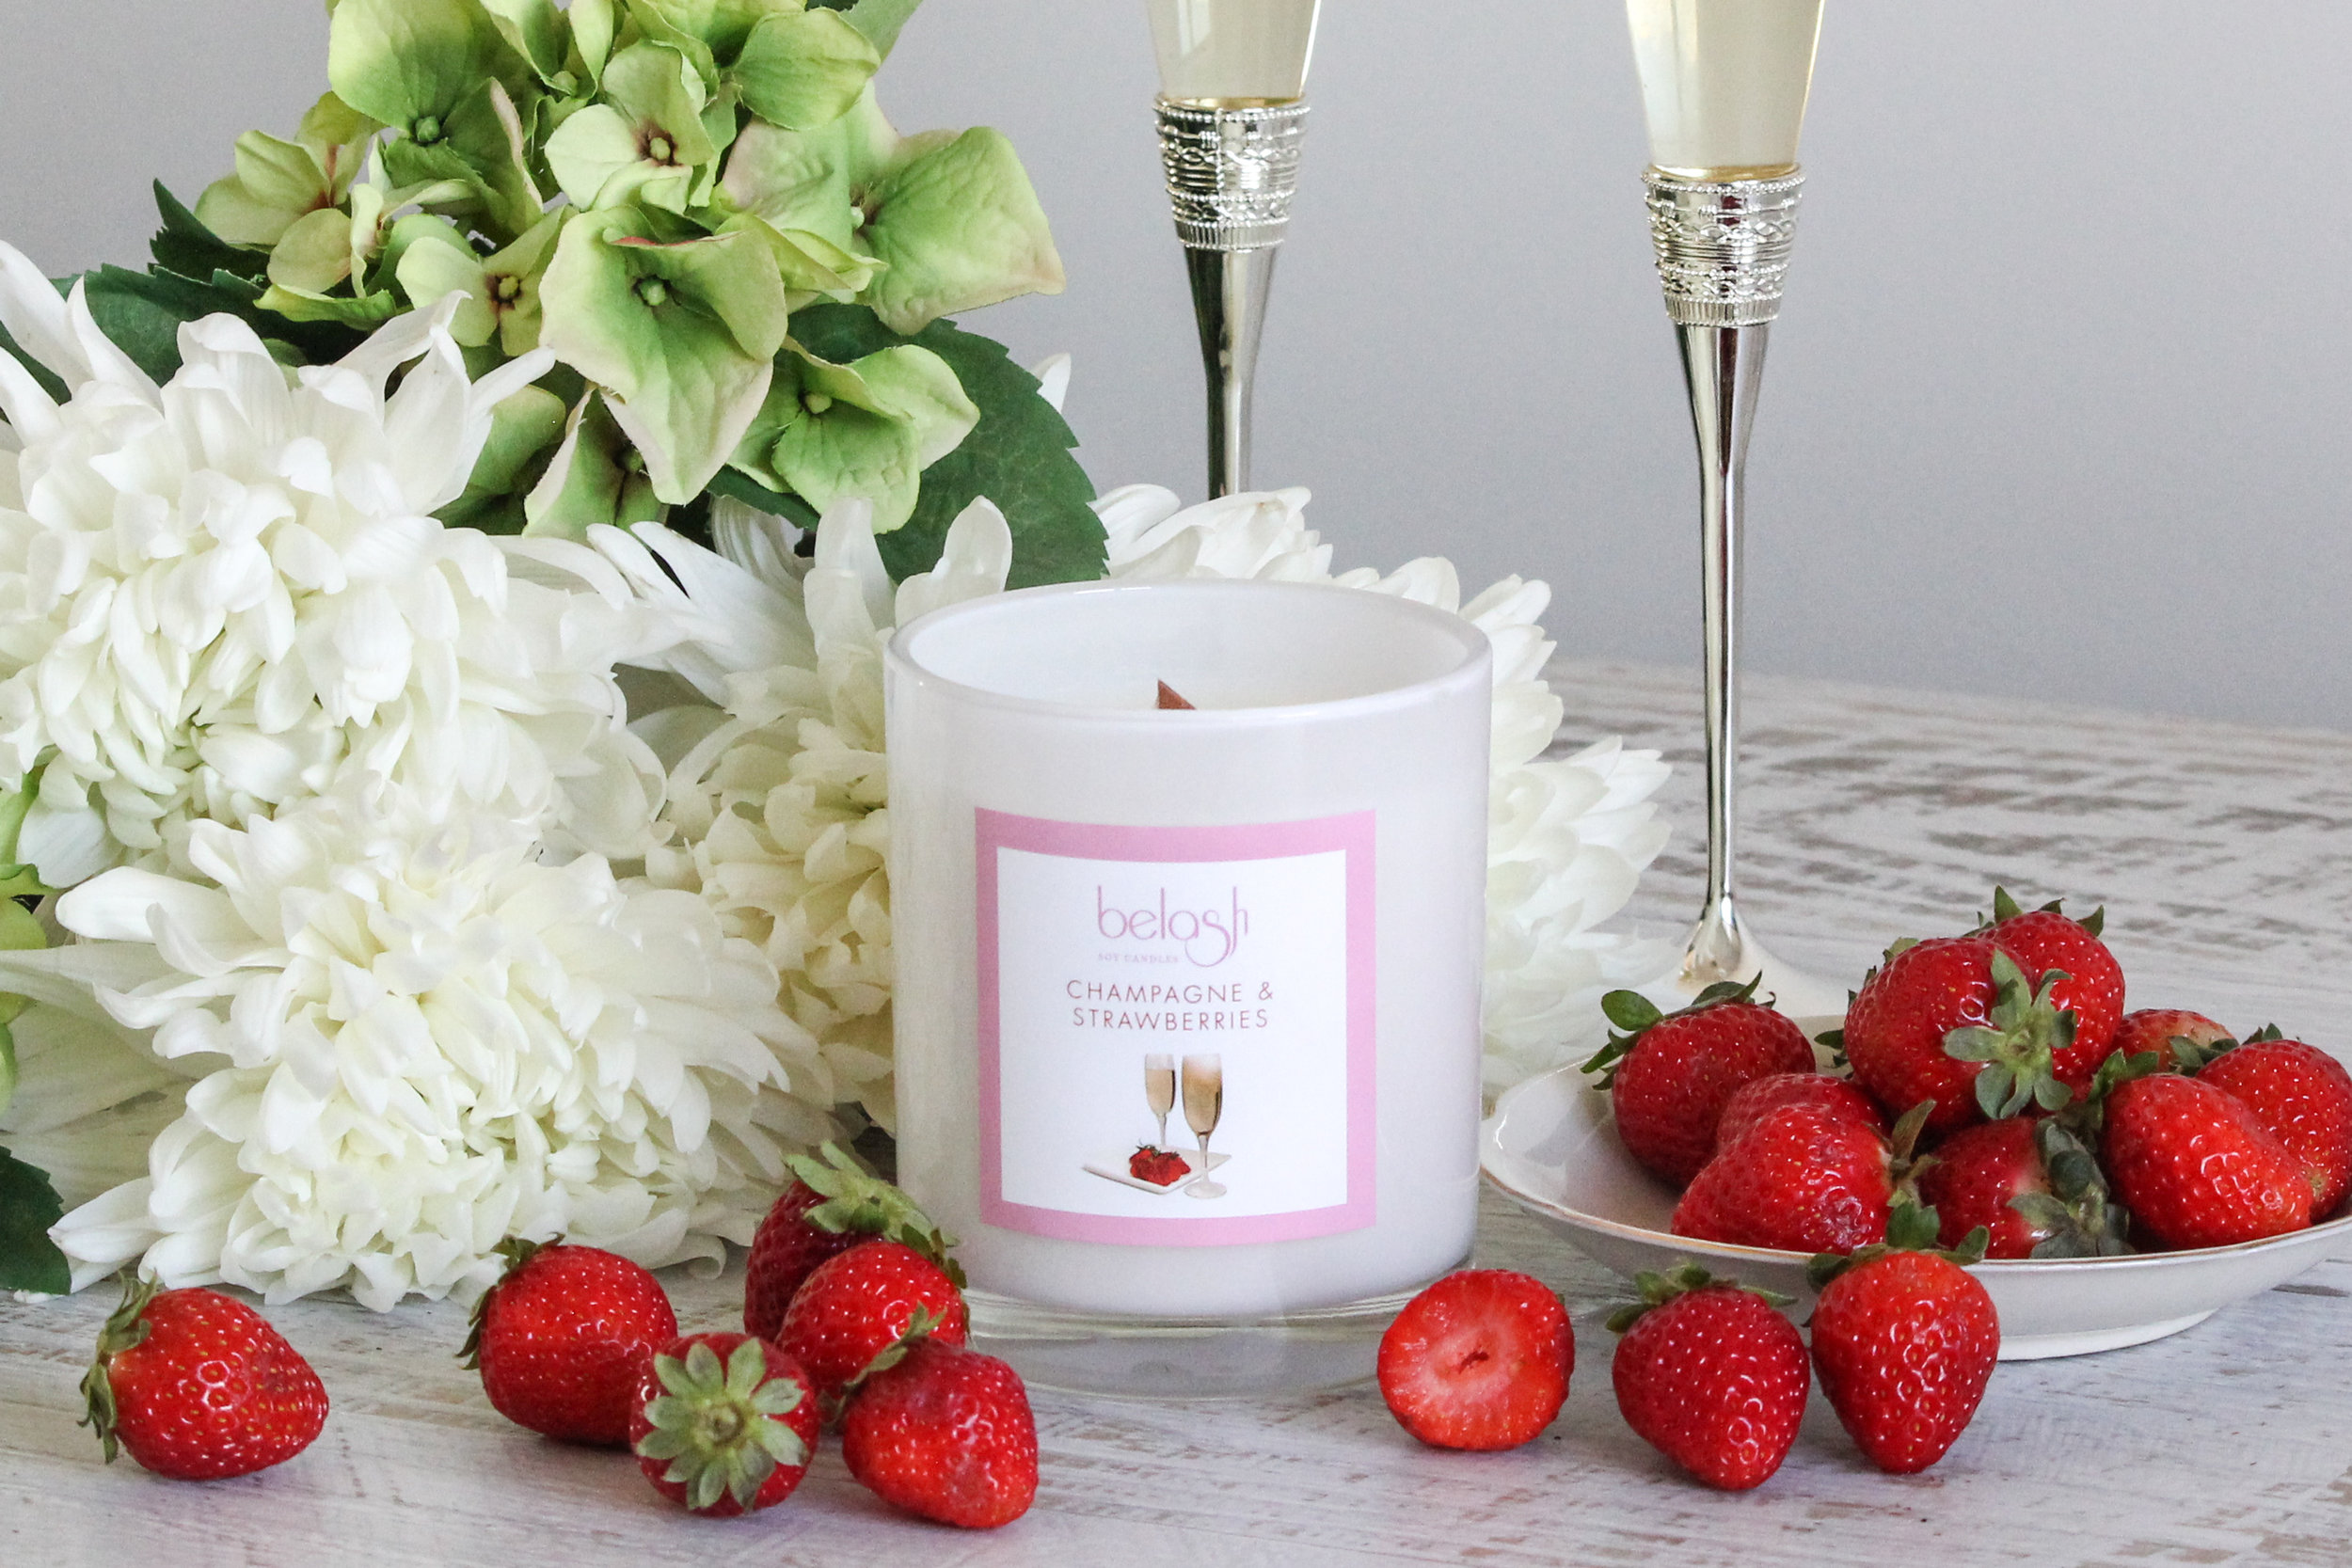 Champagne and Strawberries Range   This range we hold close to our heart.... Not only does it have the beautiful fragrance of Champagne and Strawberries but we also donate 5% of all sales to National Breast Cancer Research